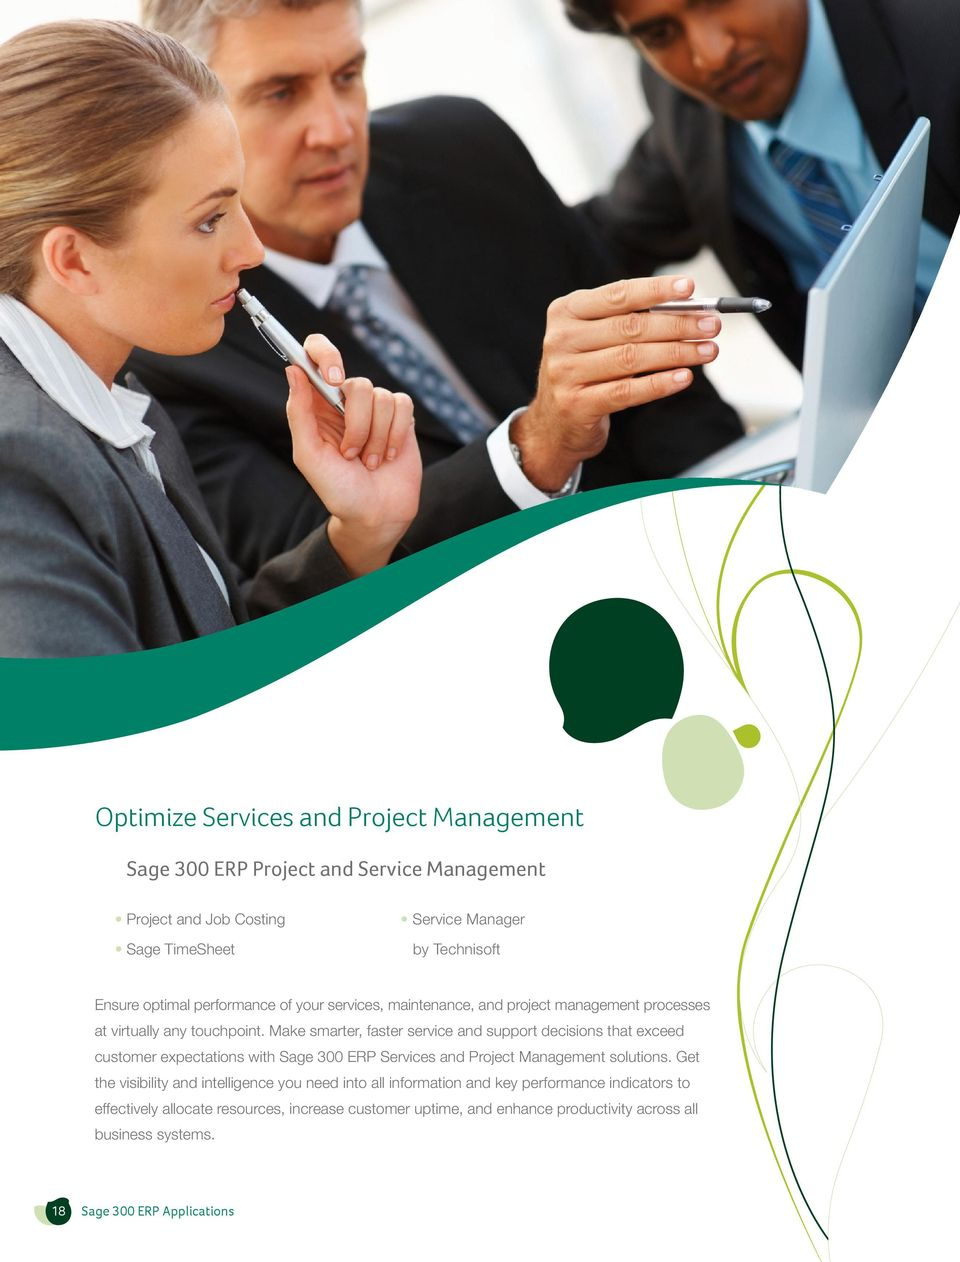 Make smarter, faster service and support decisions that exceed customer expectations with Sage 300 ERP Services and Project Management solutions.